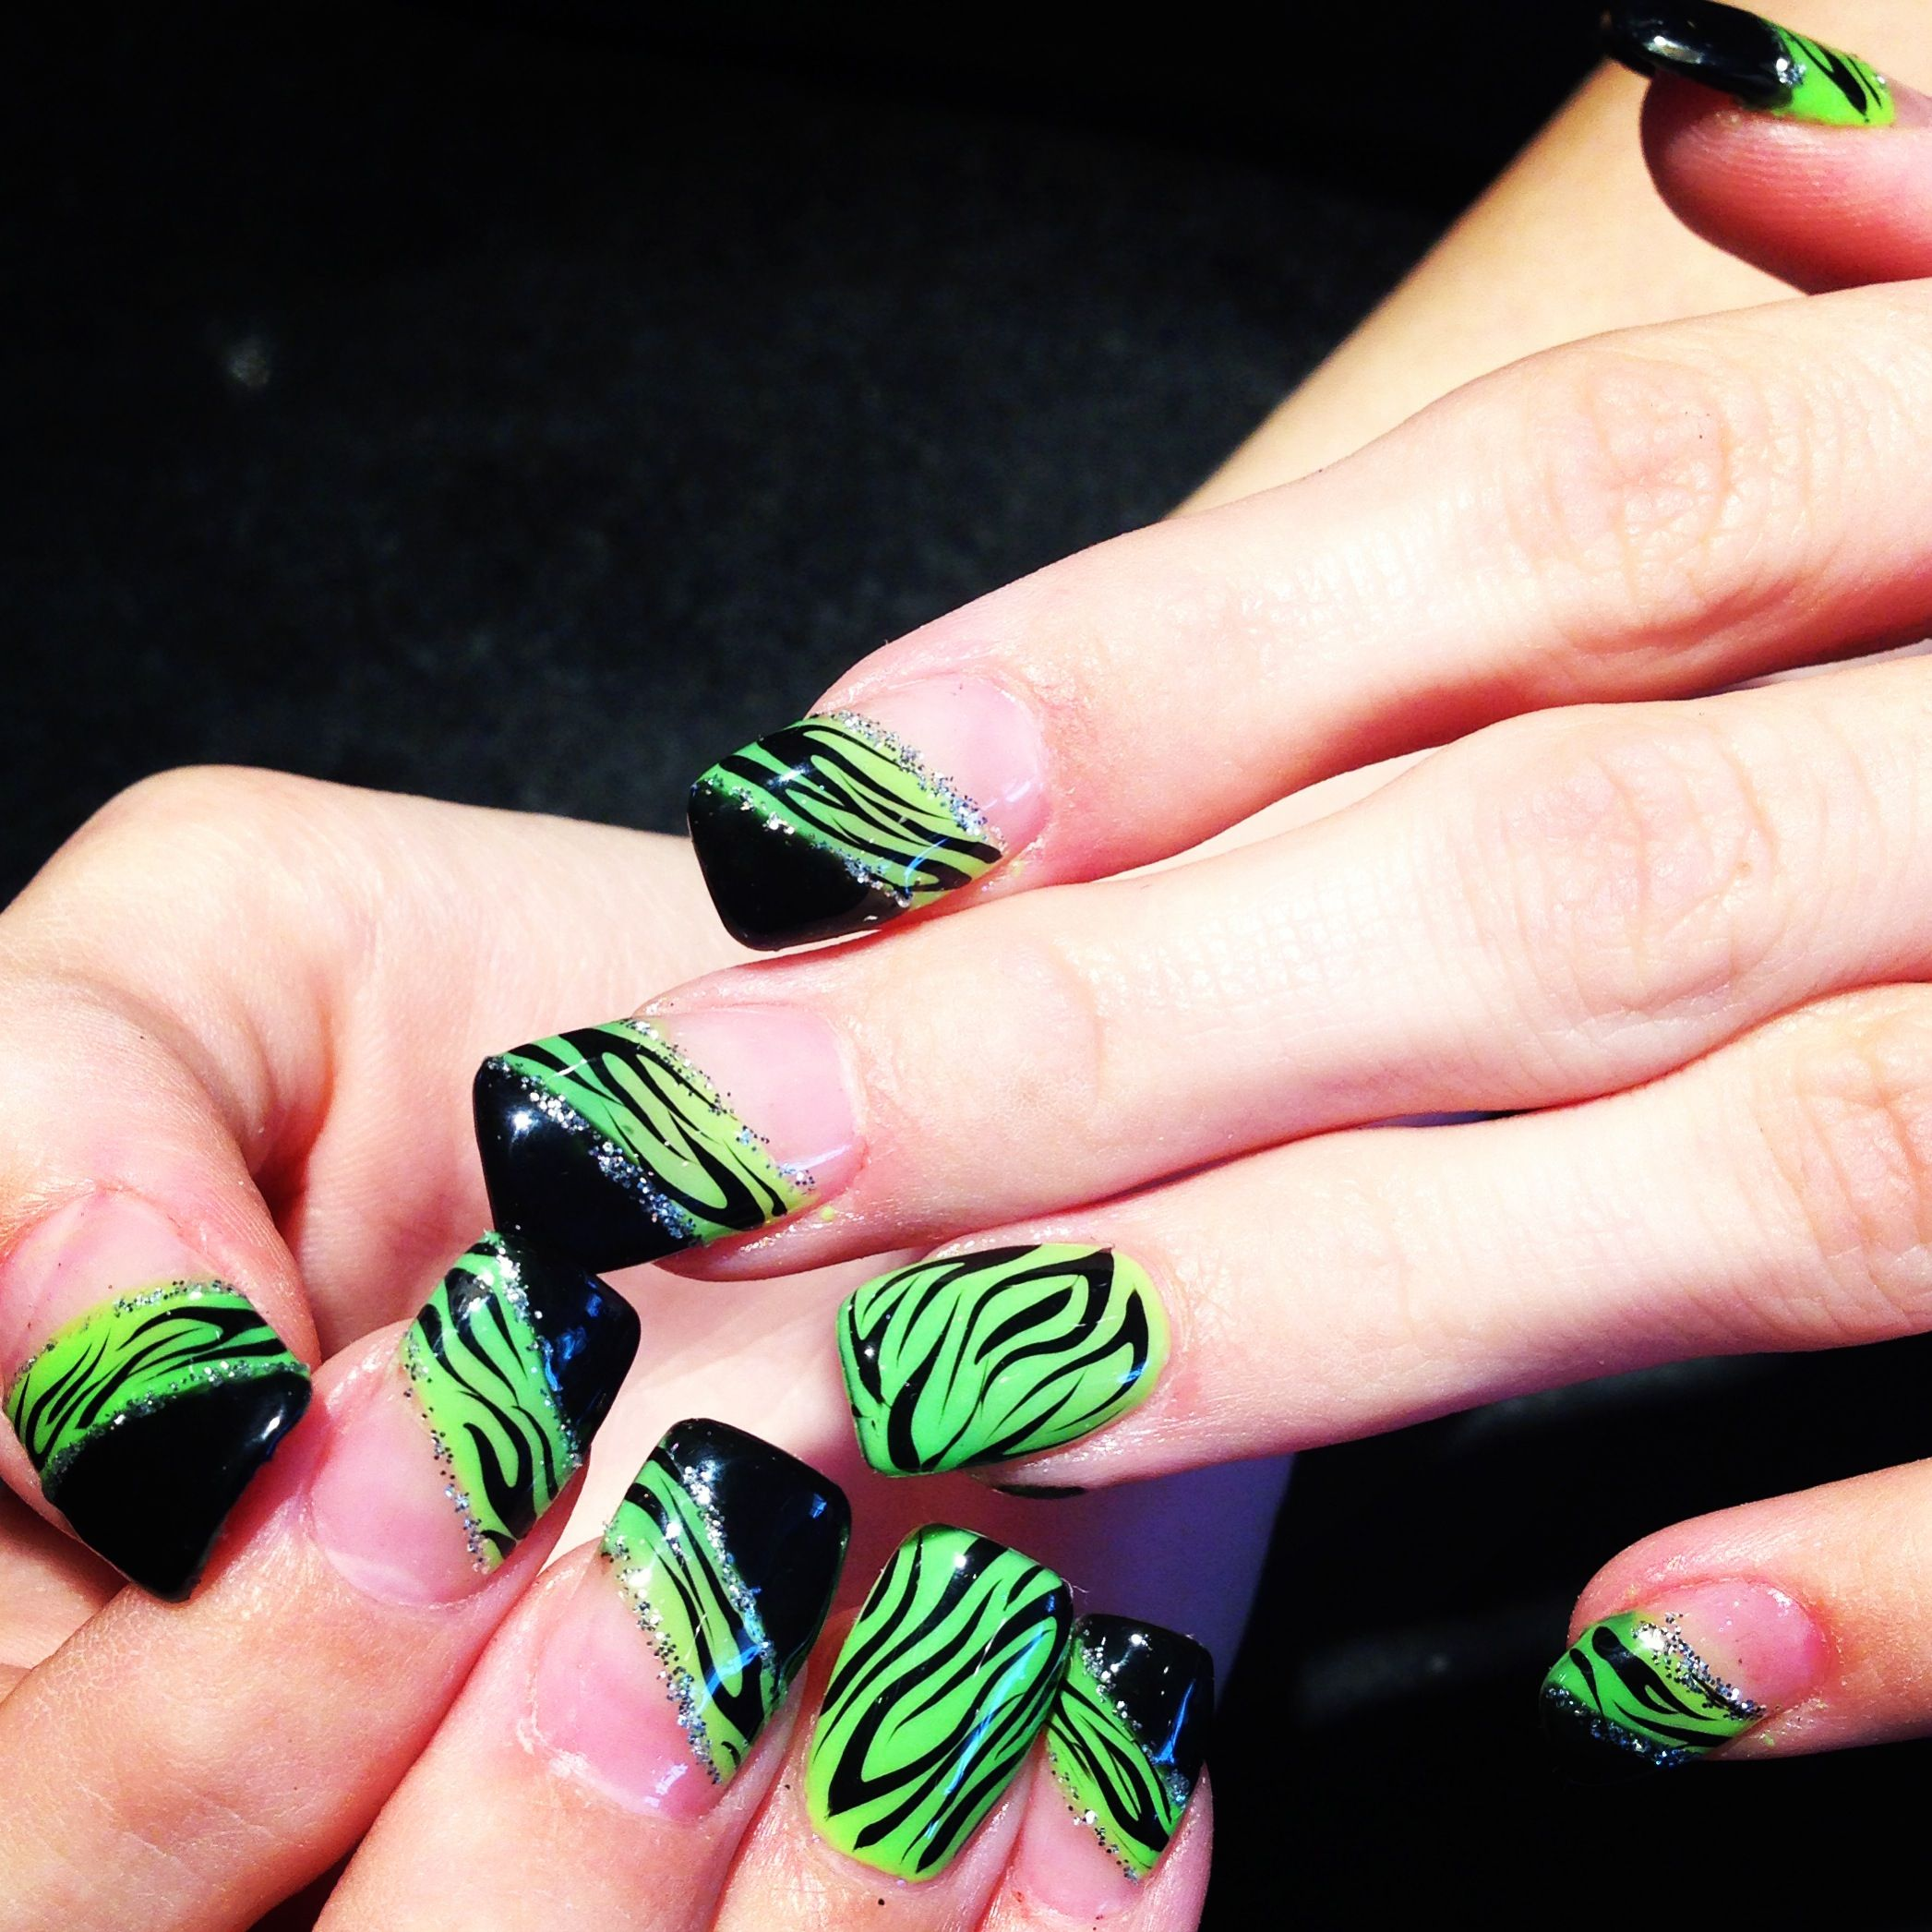 Nail art, cool nail design . Zebra nail design with gel color on ...